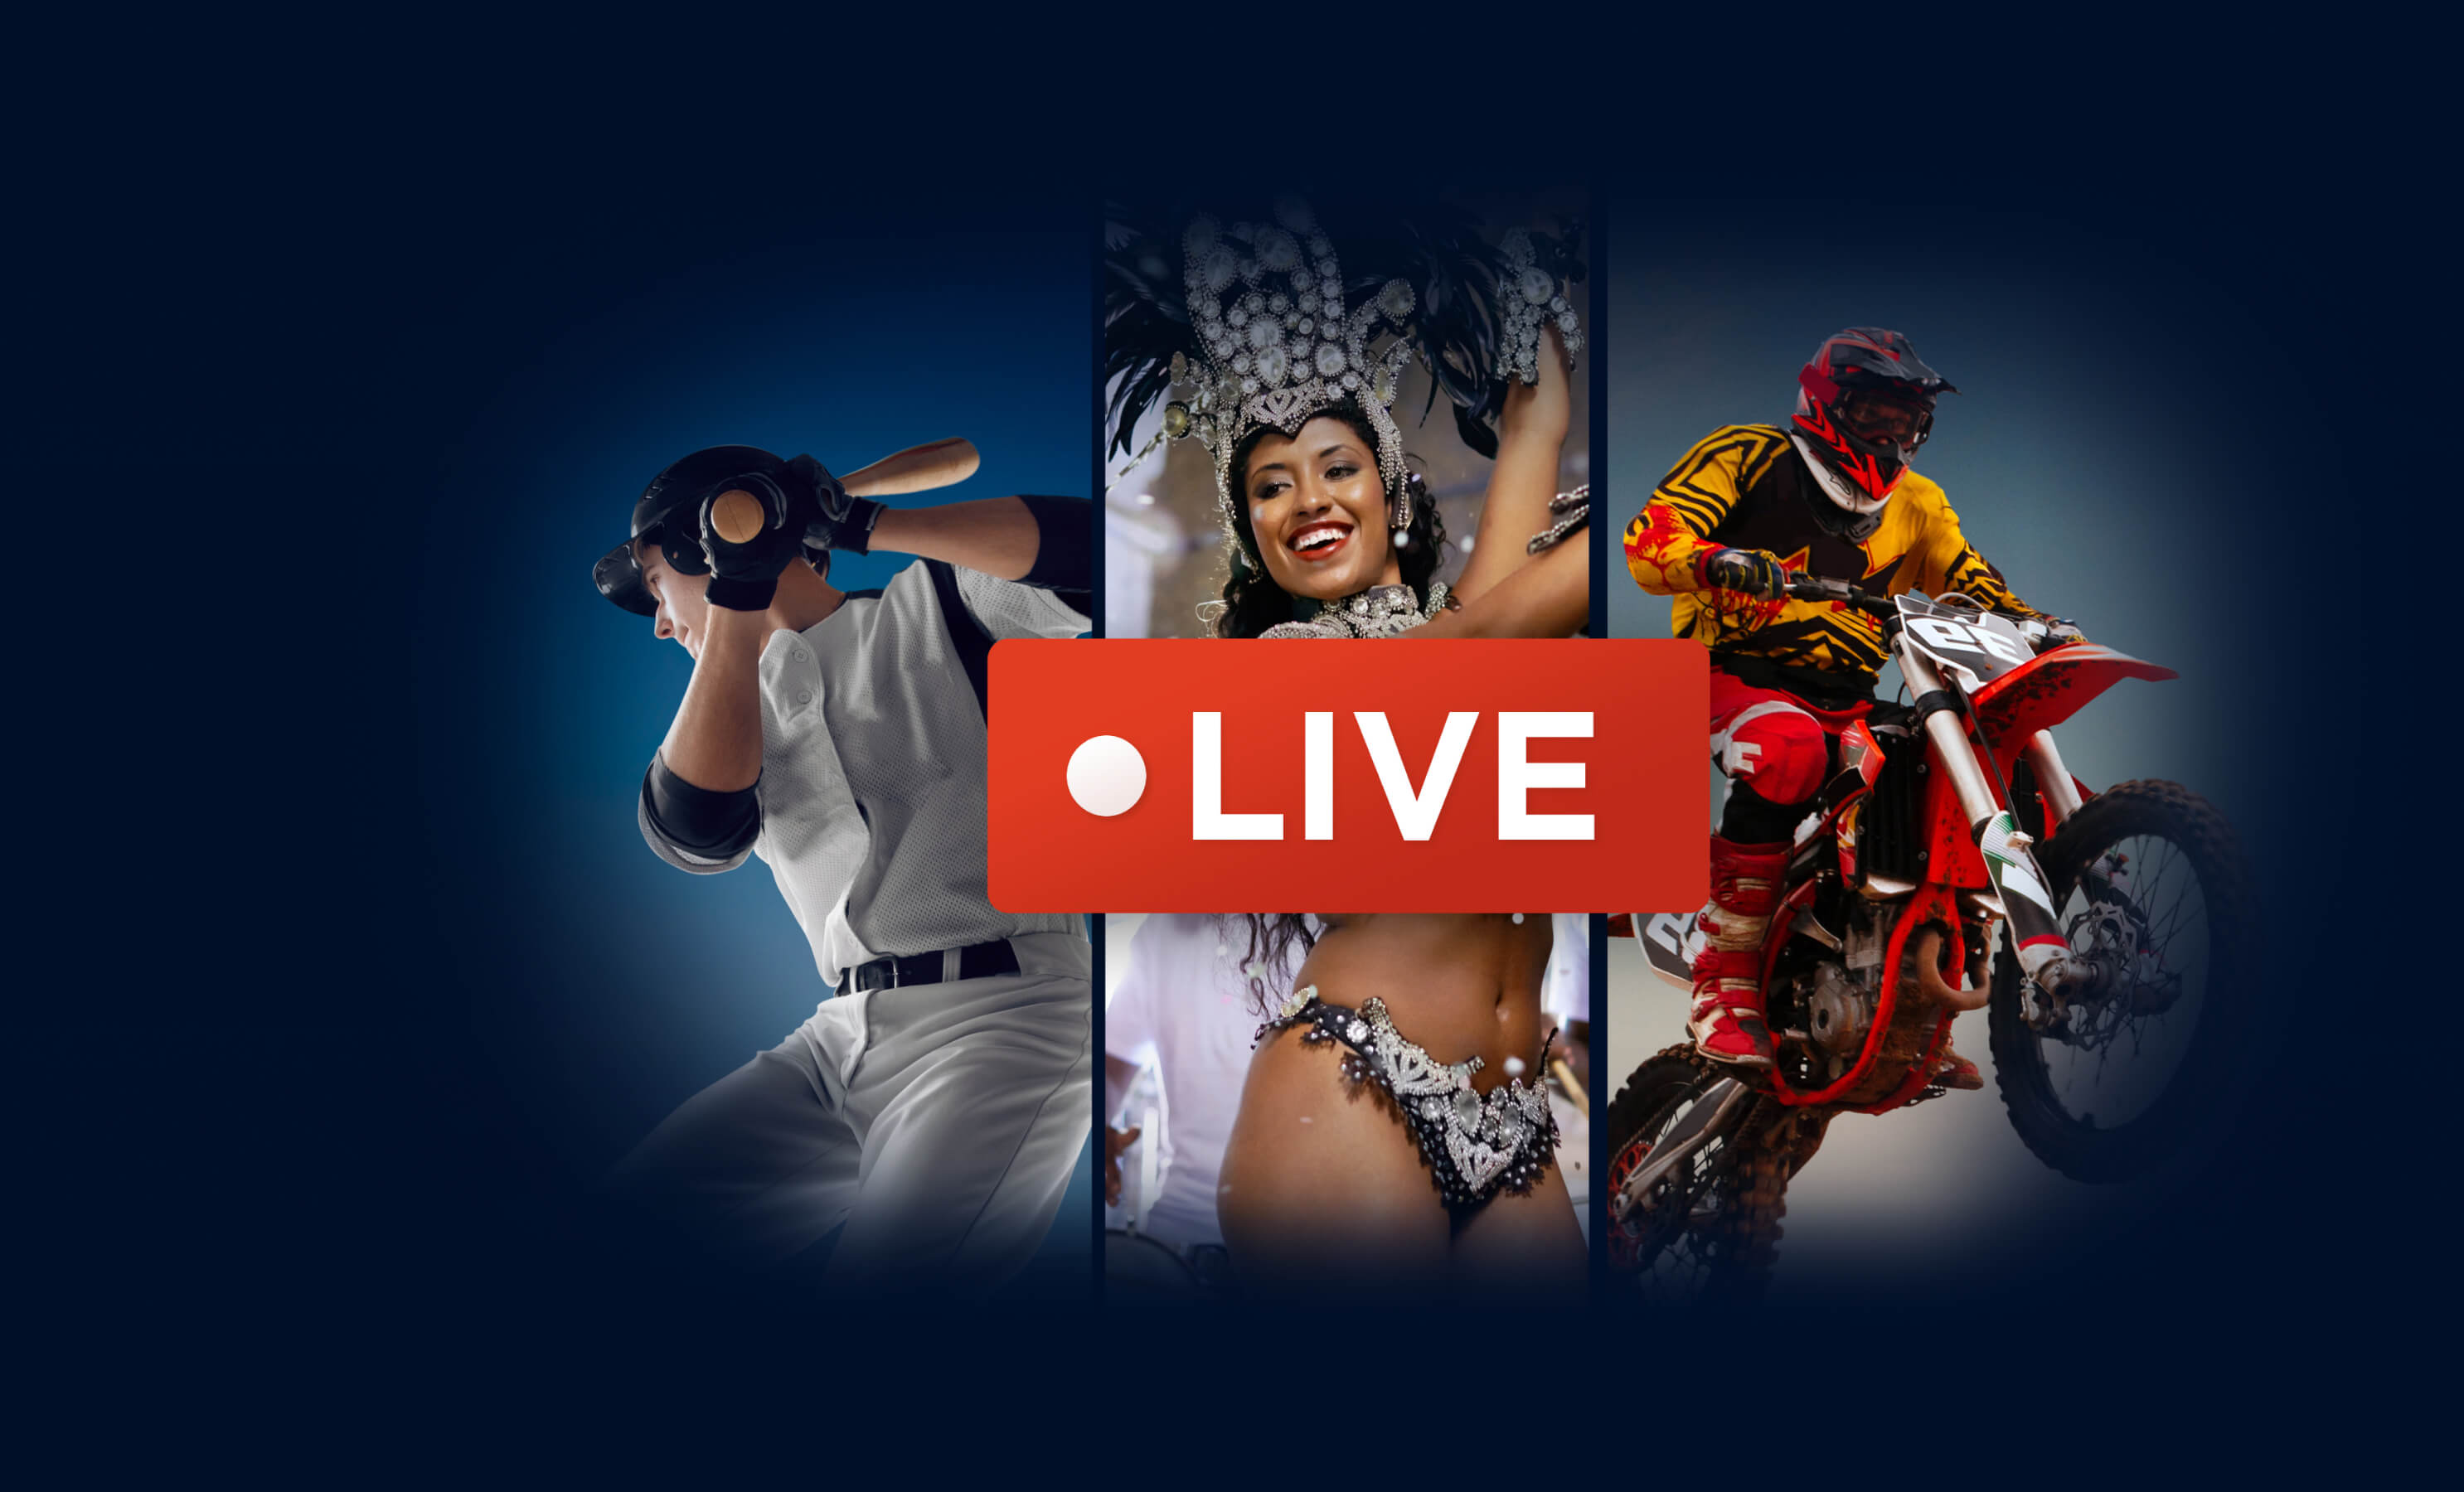 all-in-one live streaming ppv platform